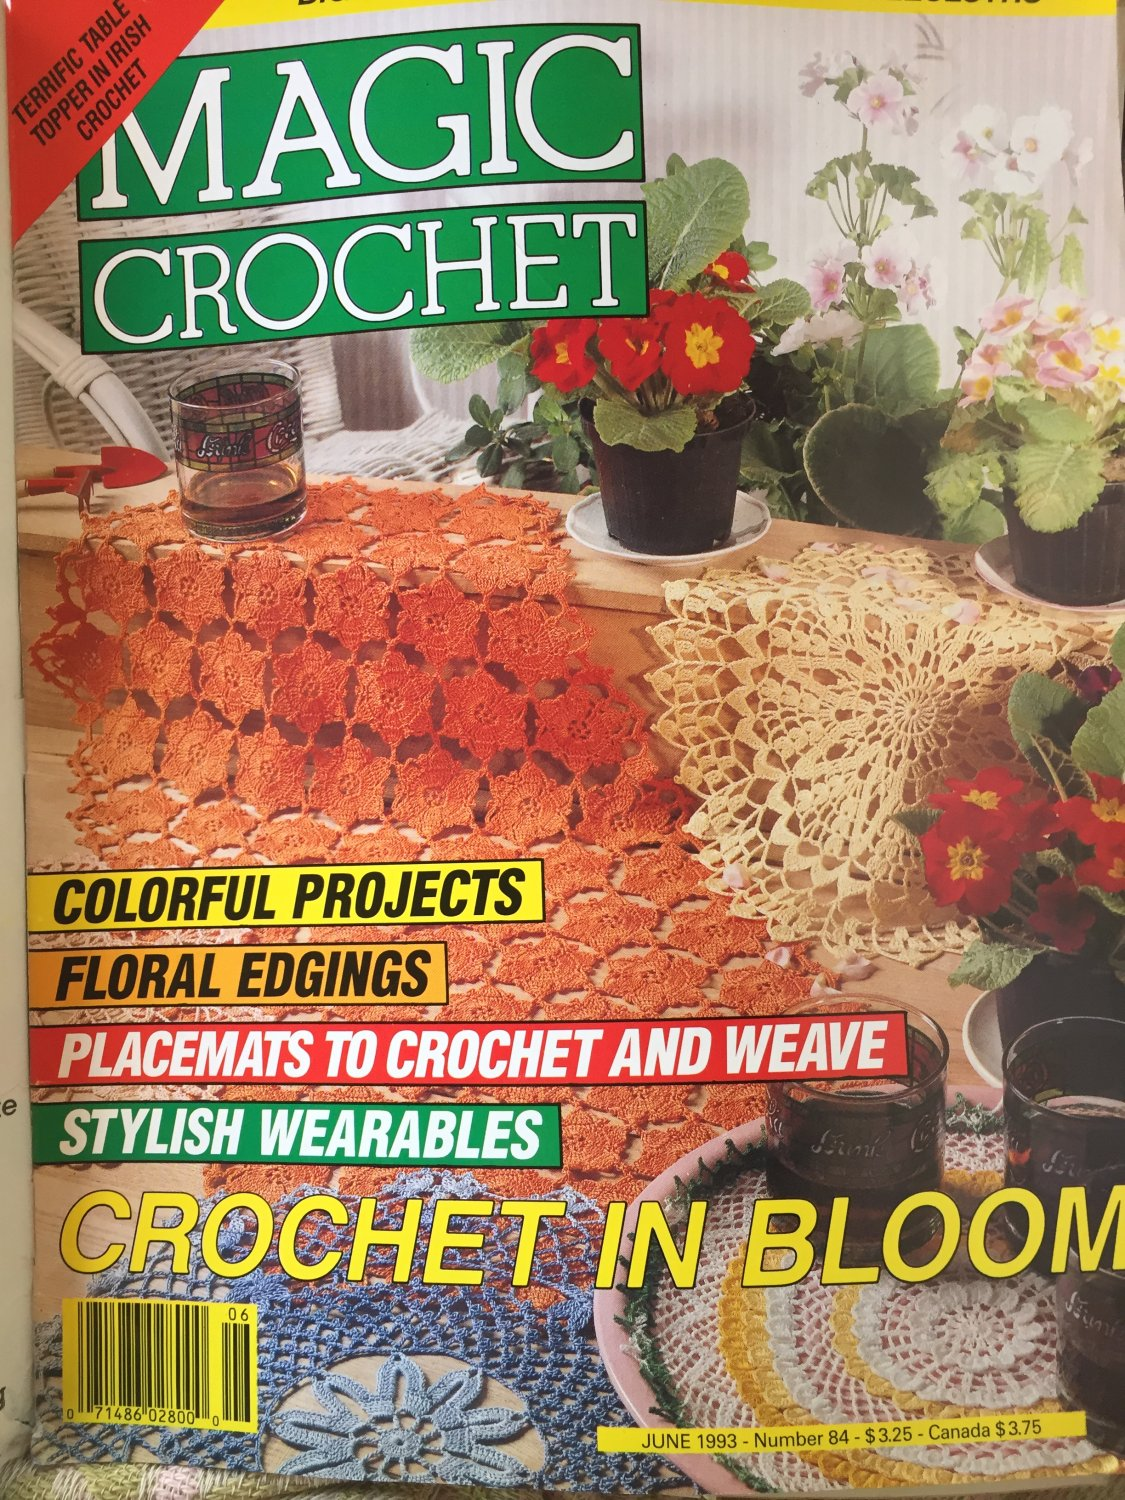 Magic Crochet 84 June 1993 Crochet Patterns Bedspreads Tablecloths Place mats Fashion